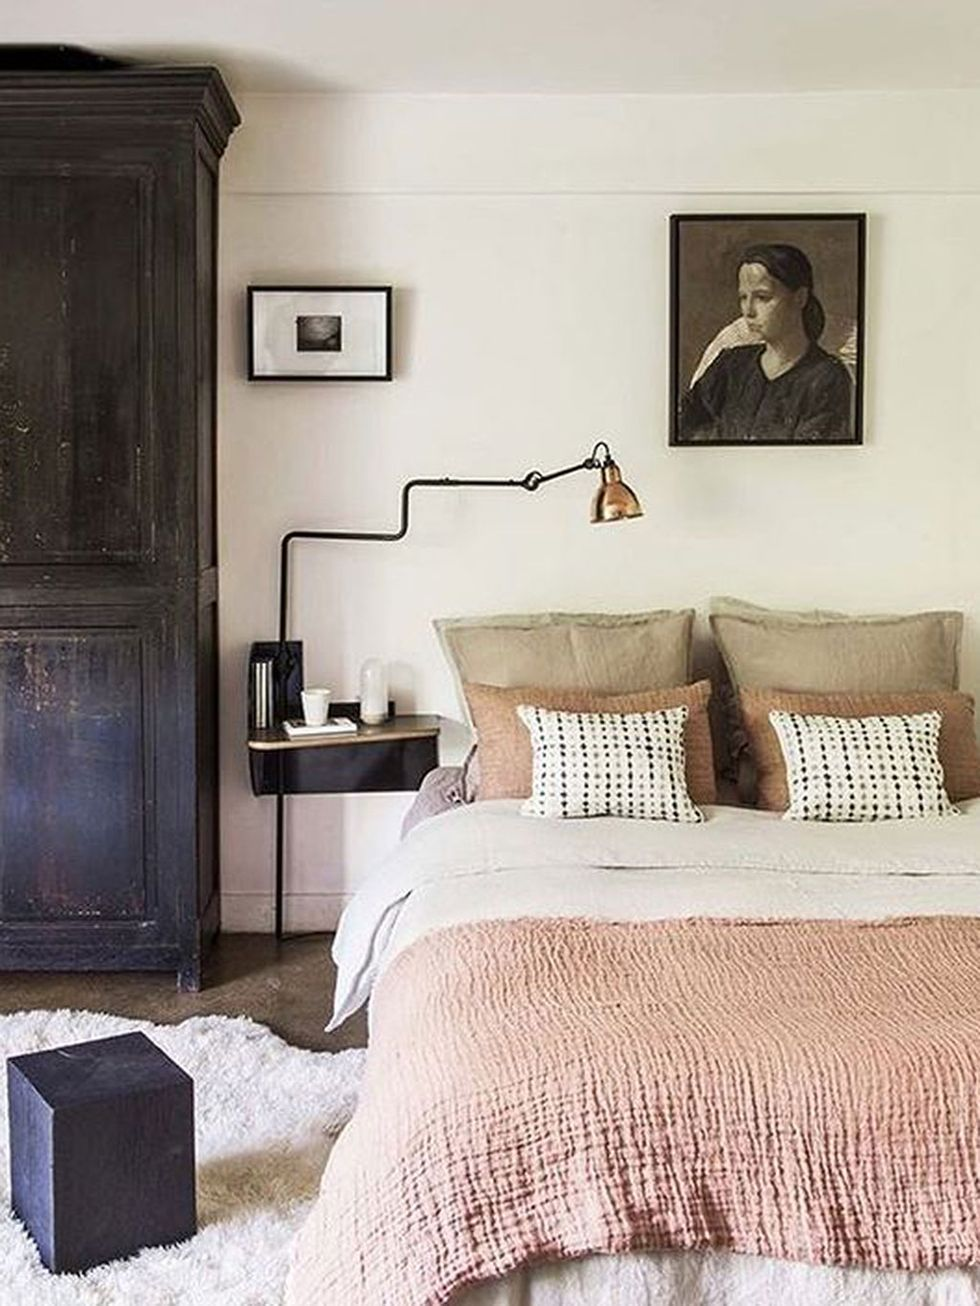 15 Colors to Paint Your House With